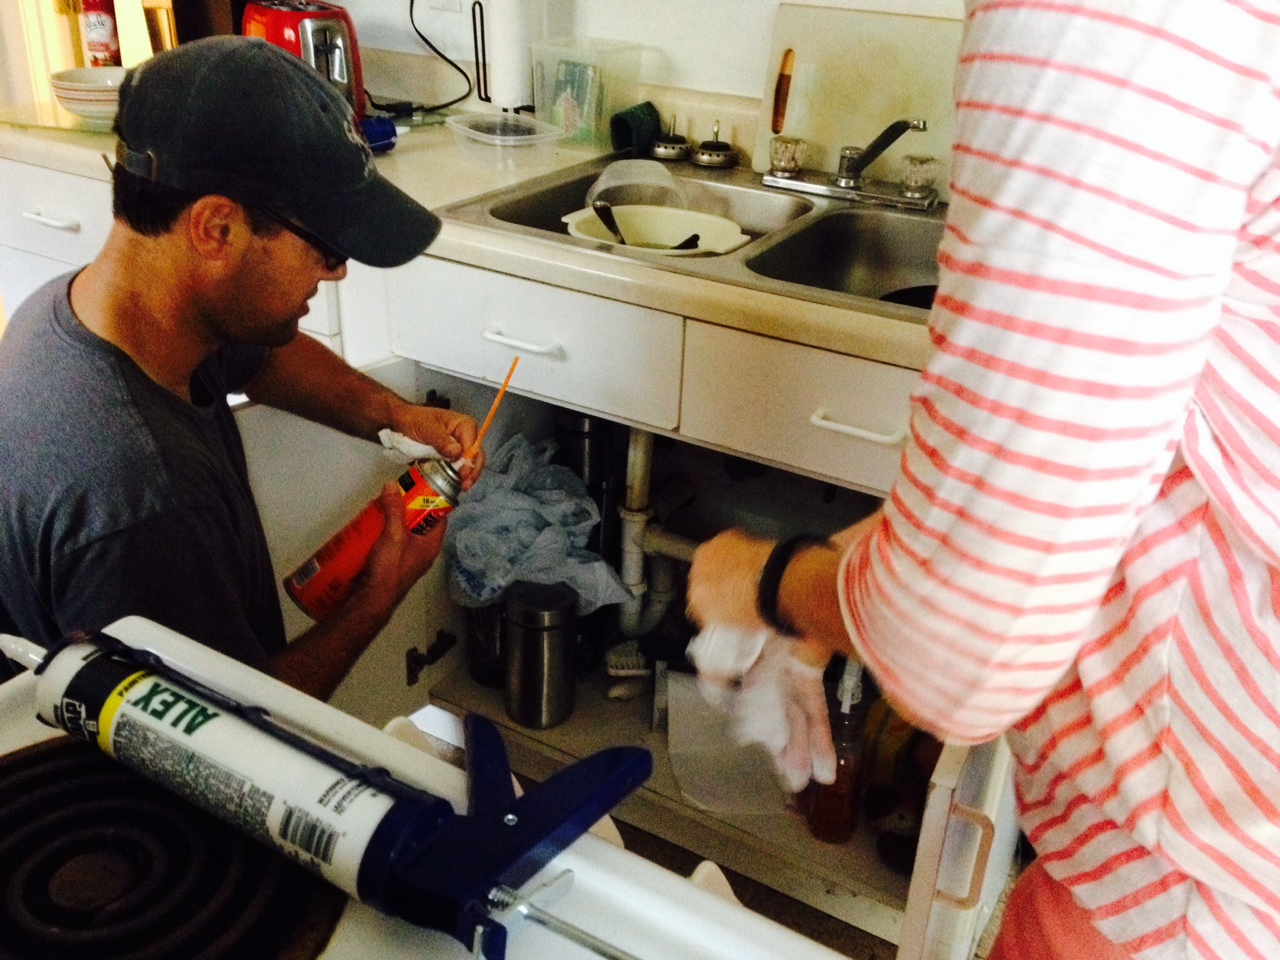 Marcus demonstrates proper air sealing for sink plumbing penetrations at the Alliance Francaise workparty.